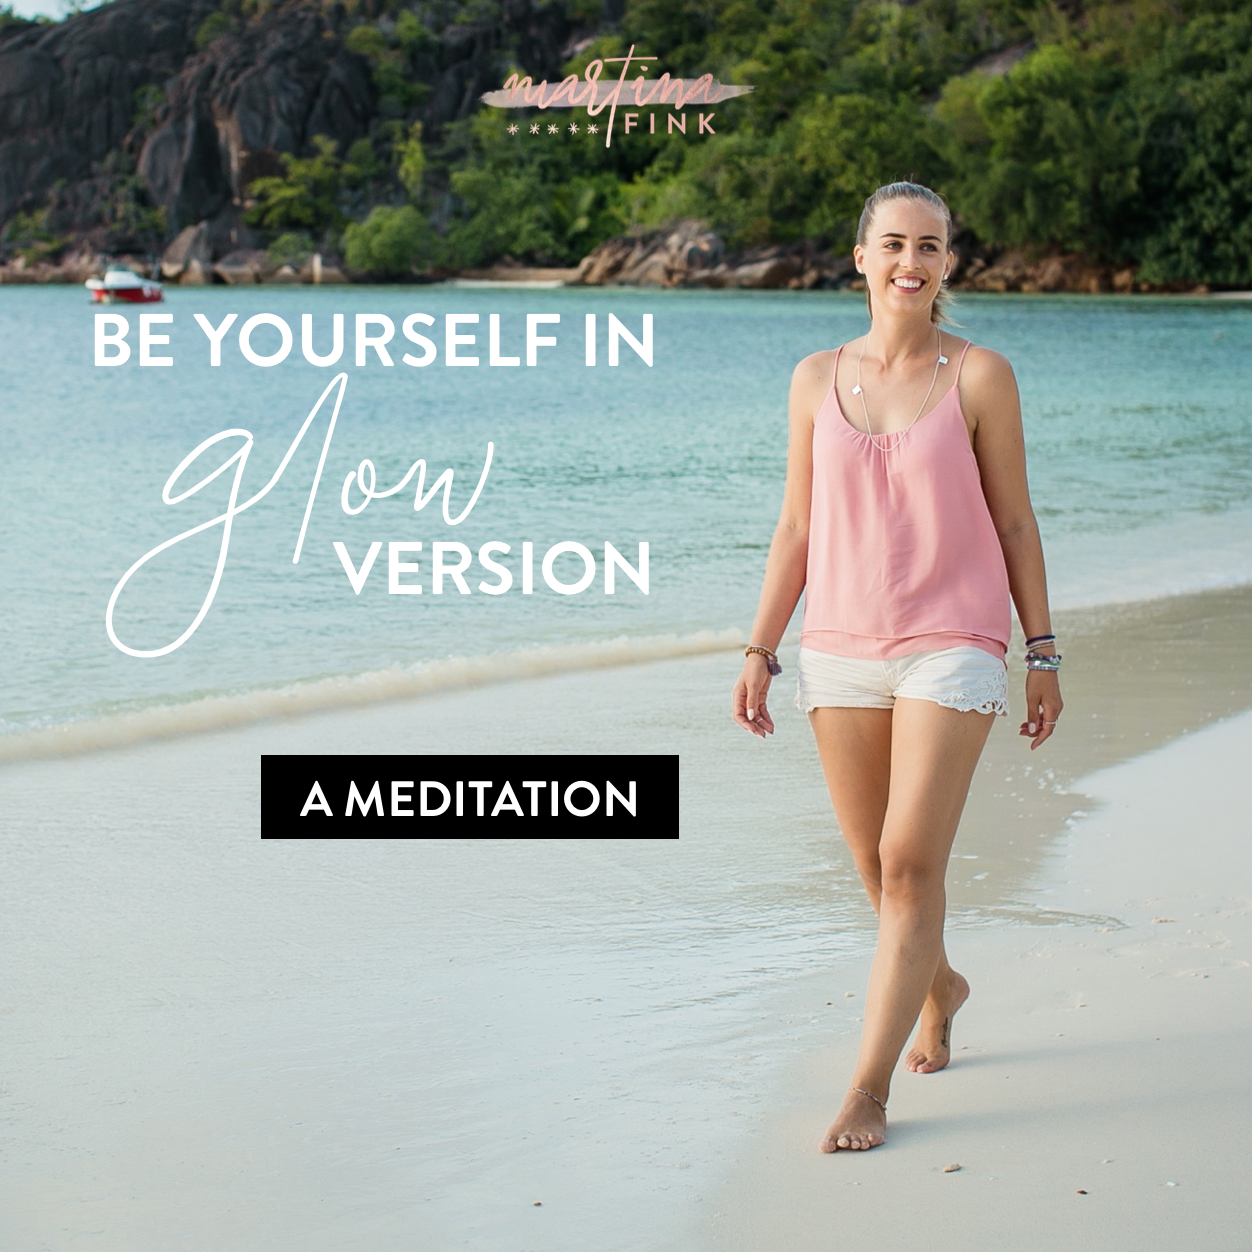 Glow Version Meditation Cover.png